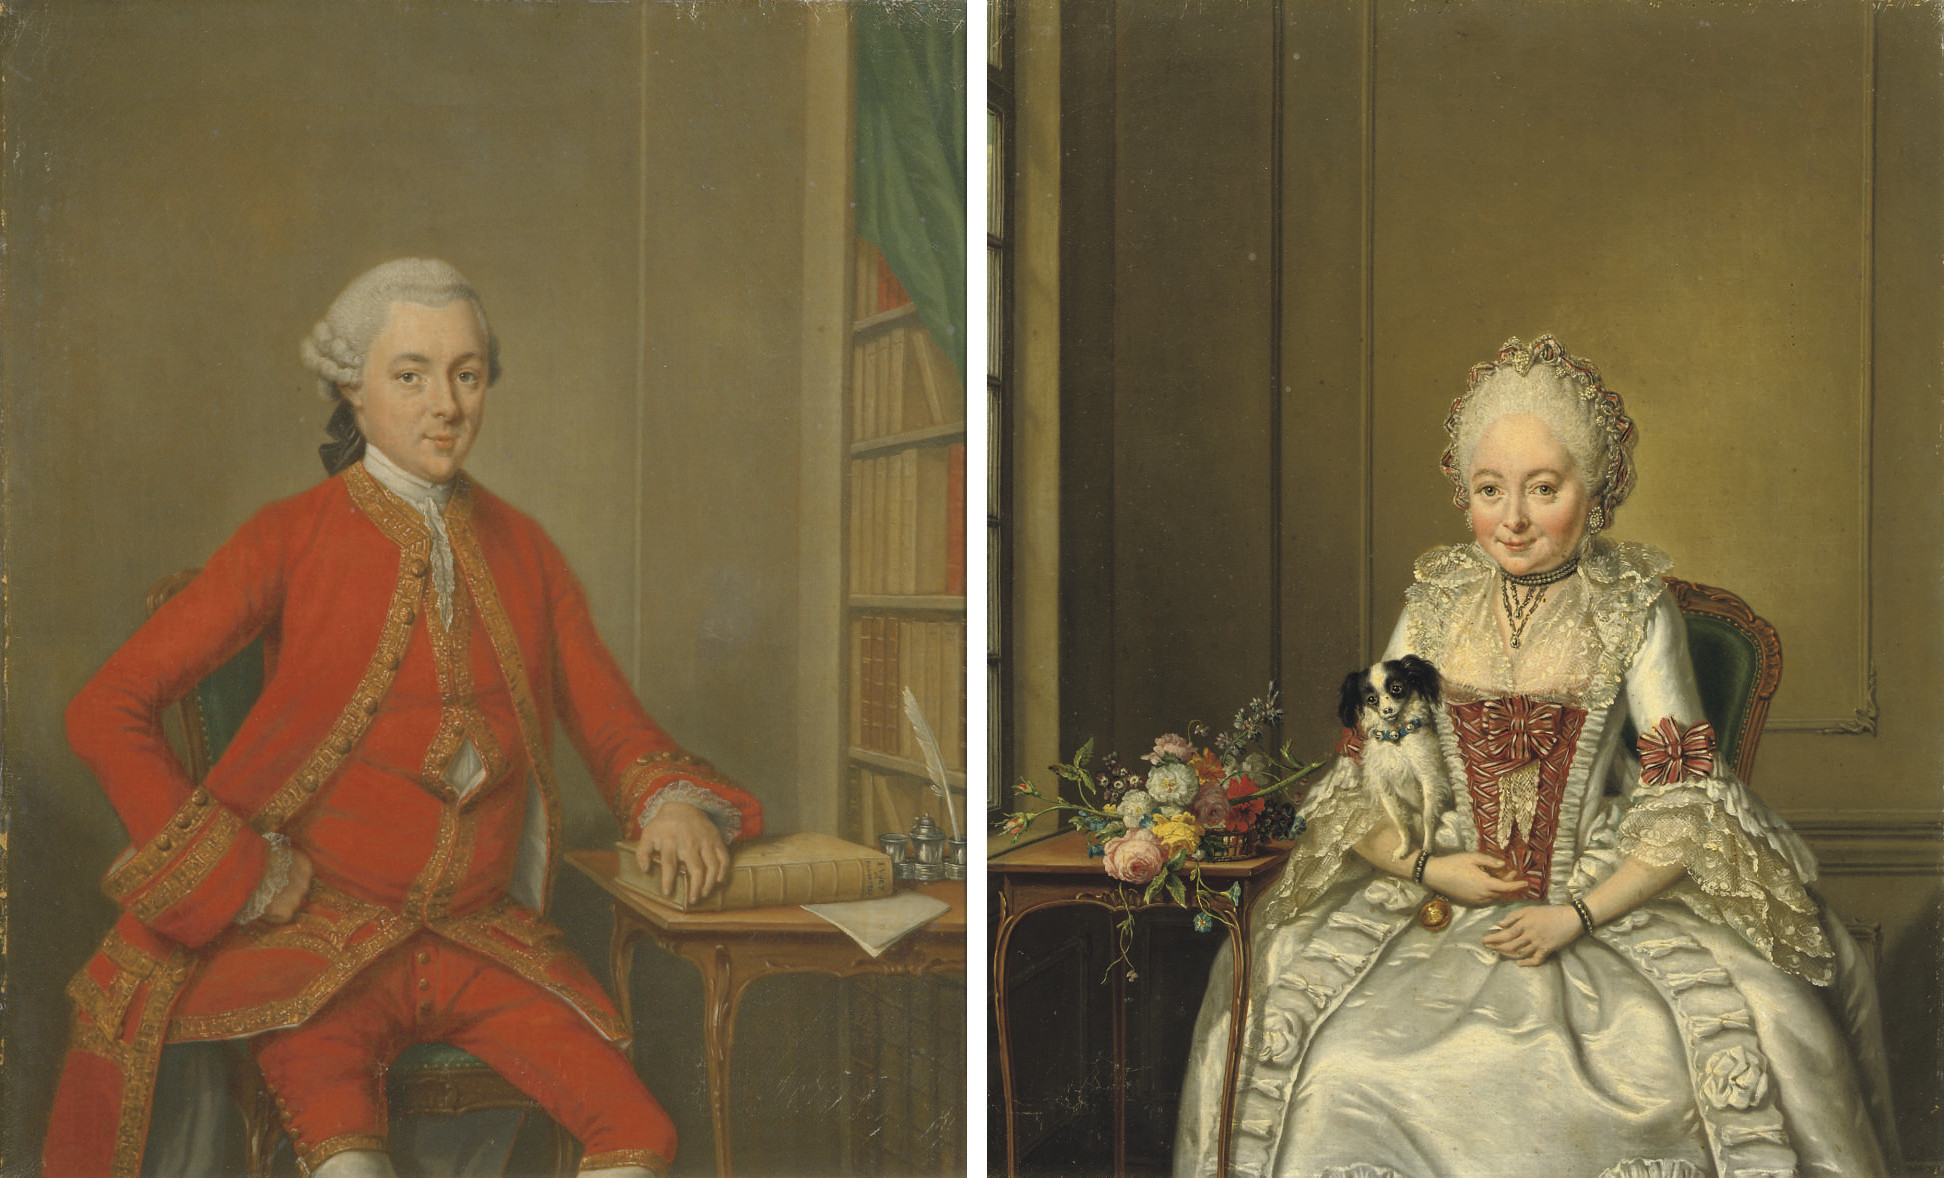 Portrait of gentleman said to be Hendrik de Roo, three-quarter-length, in a red costume and wig; and Portrait of a lady said to be Hester Constantia de Witt, three-quarter-length, in a white satin dress